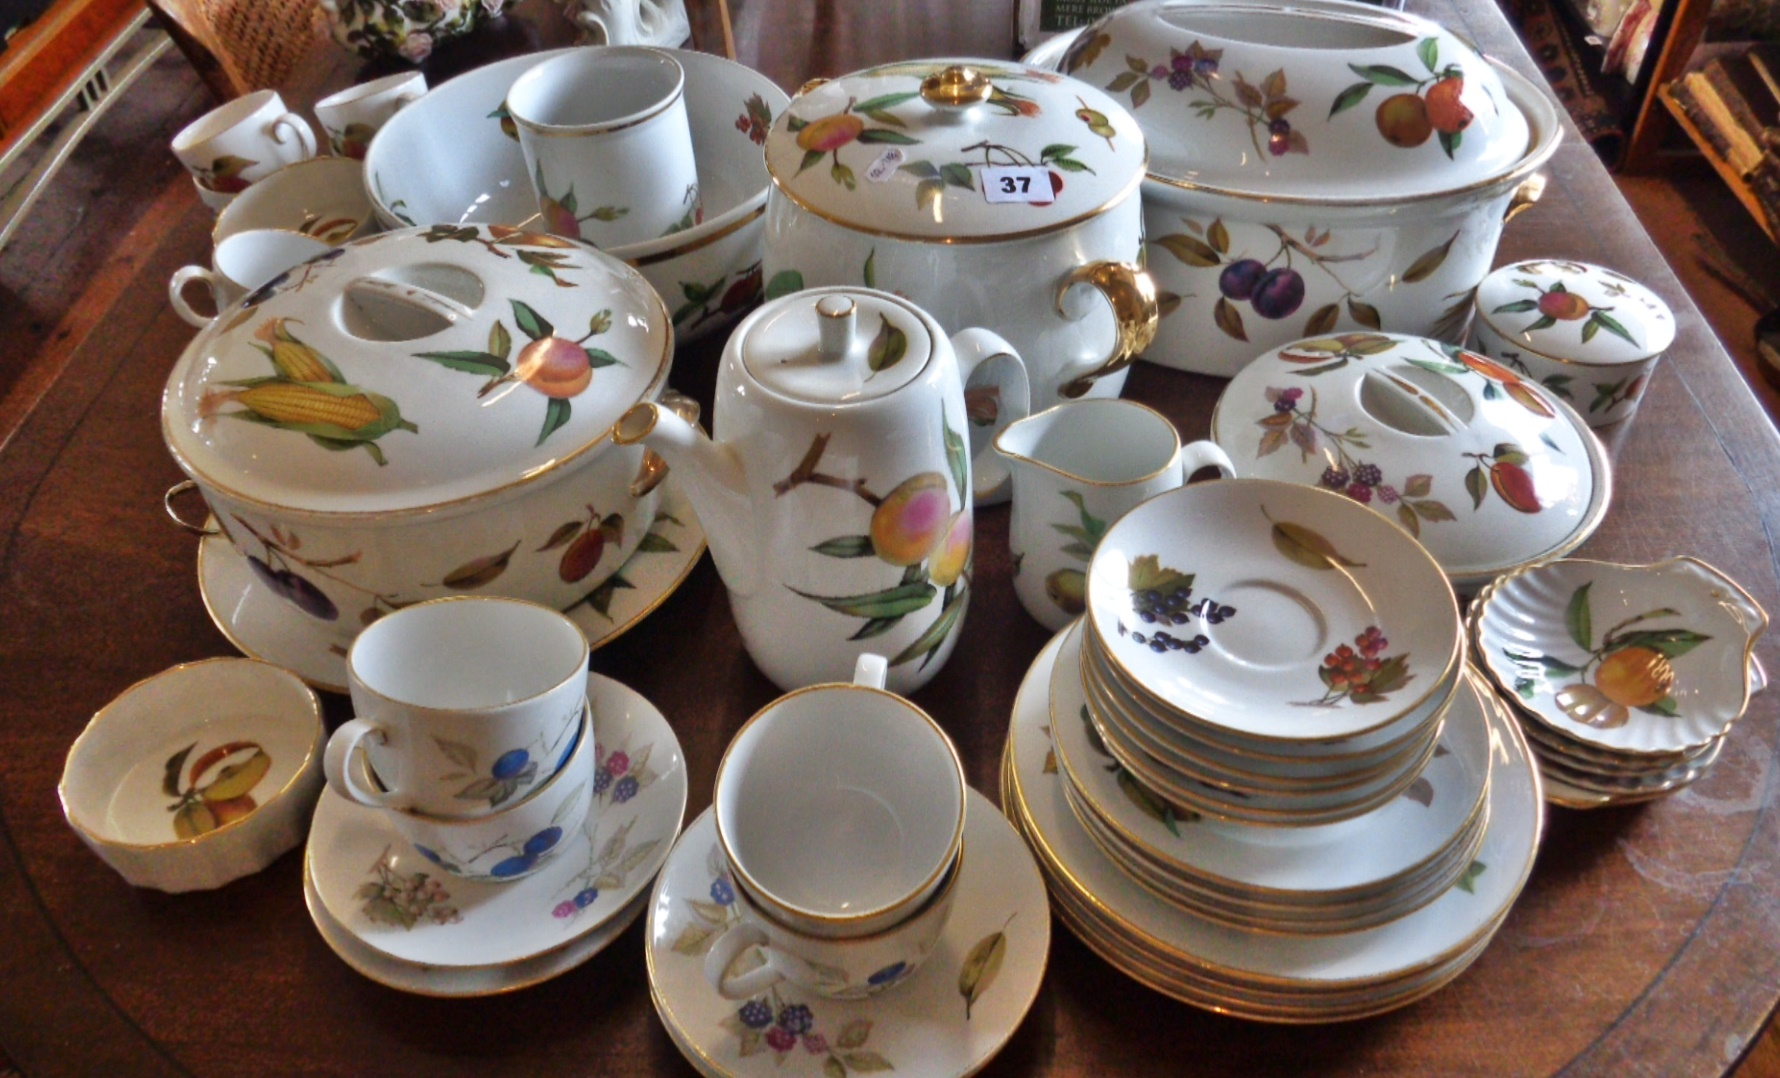 Lot 37 - Extensive Royal Worcester Evesham collection, inc. tureens, coffee pot, cups and saucers, plates,